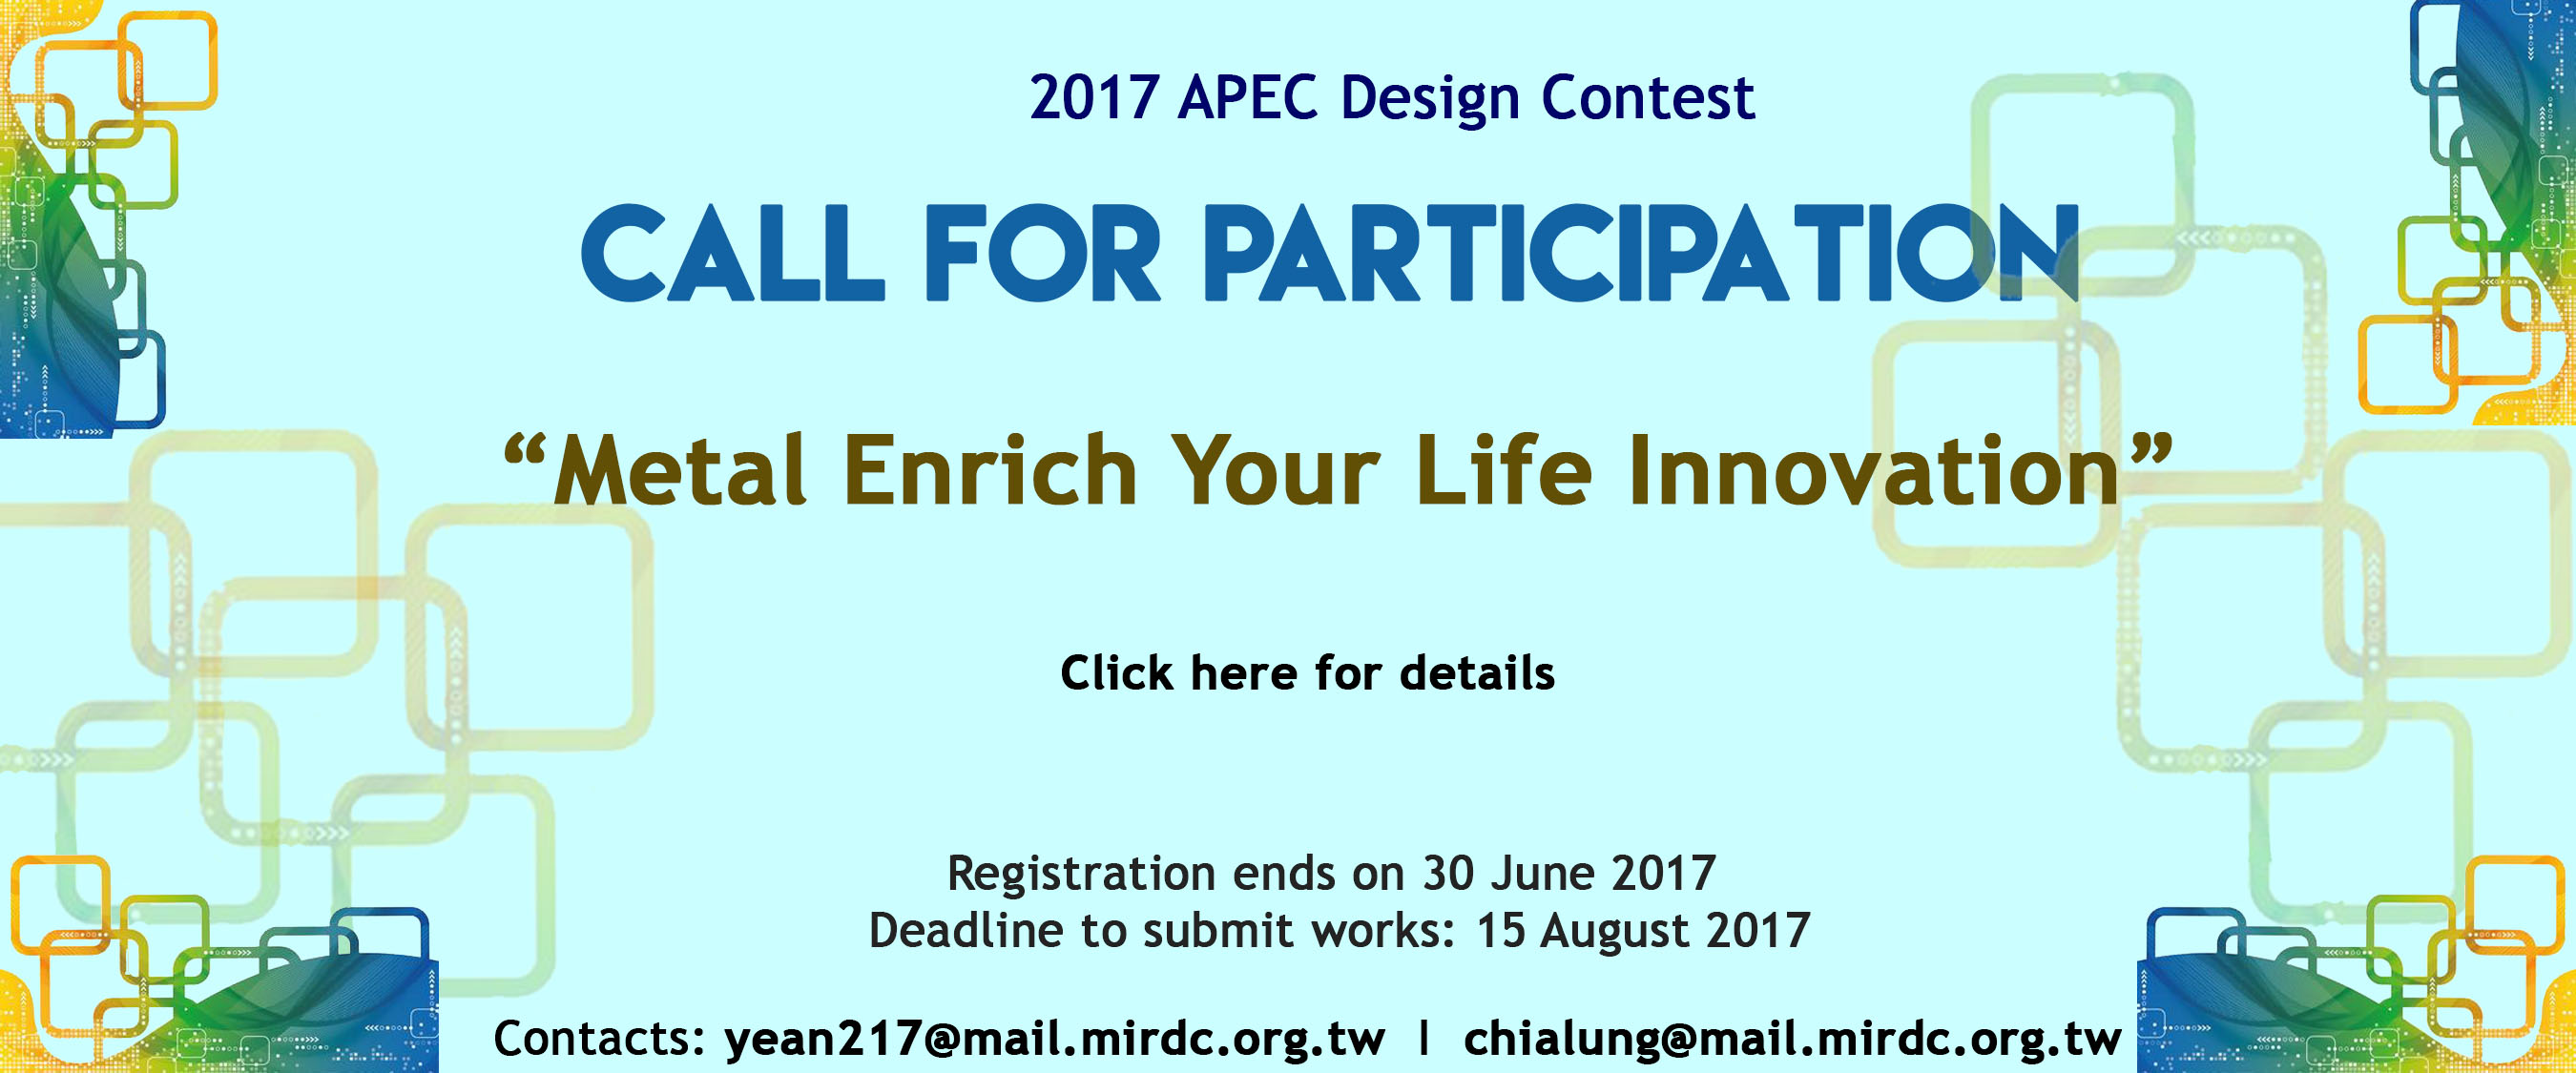 Call for Participation - MIRDC